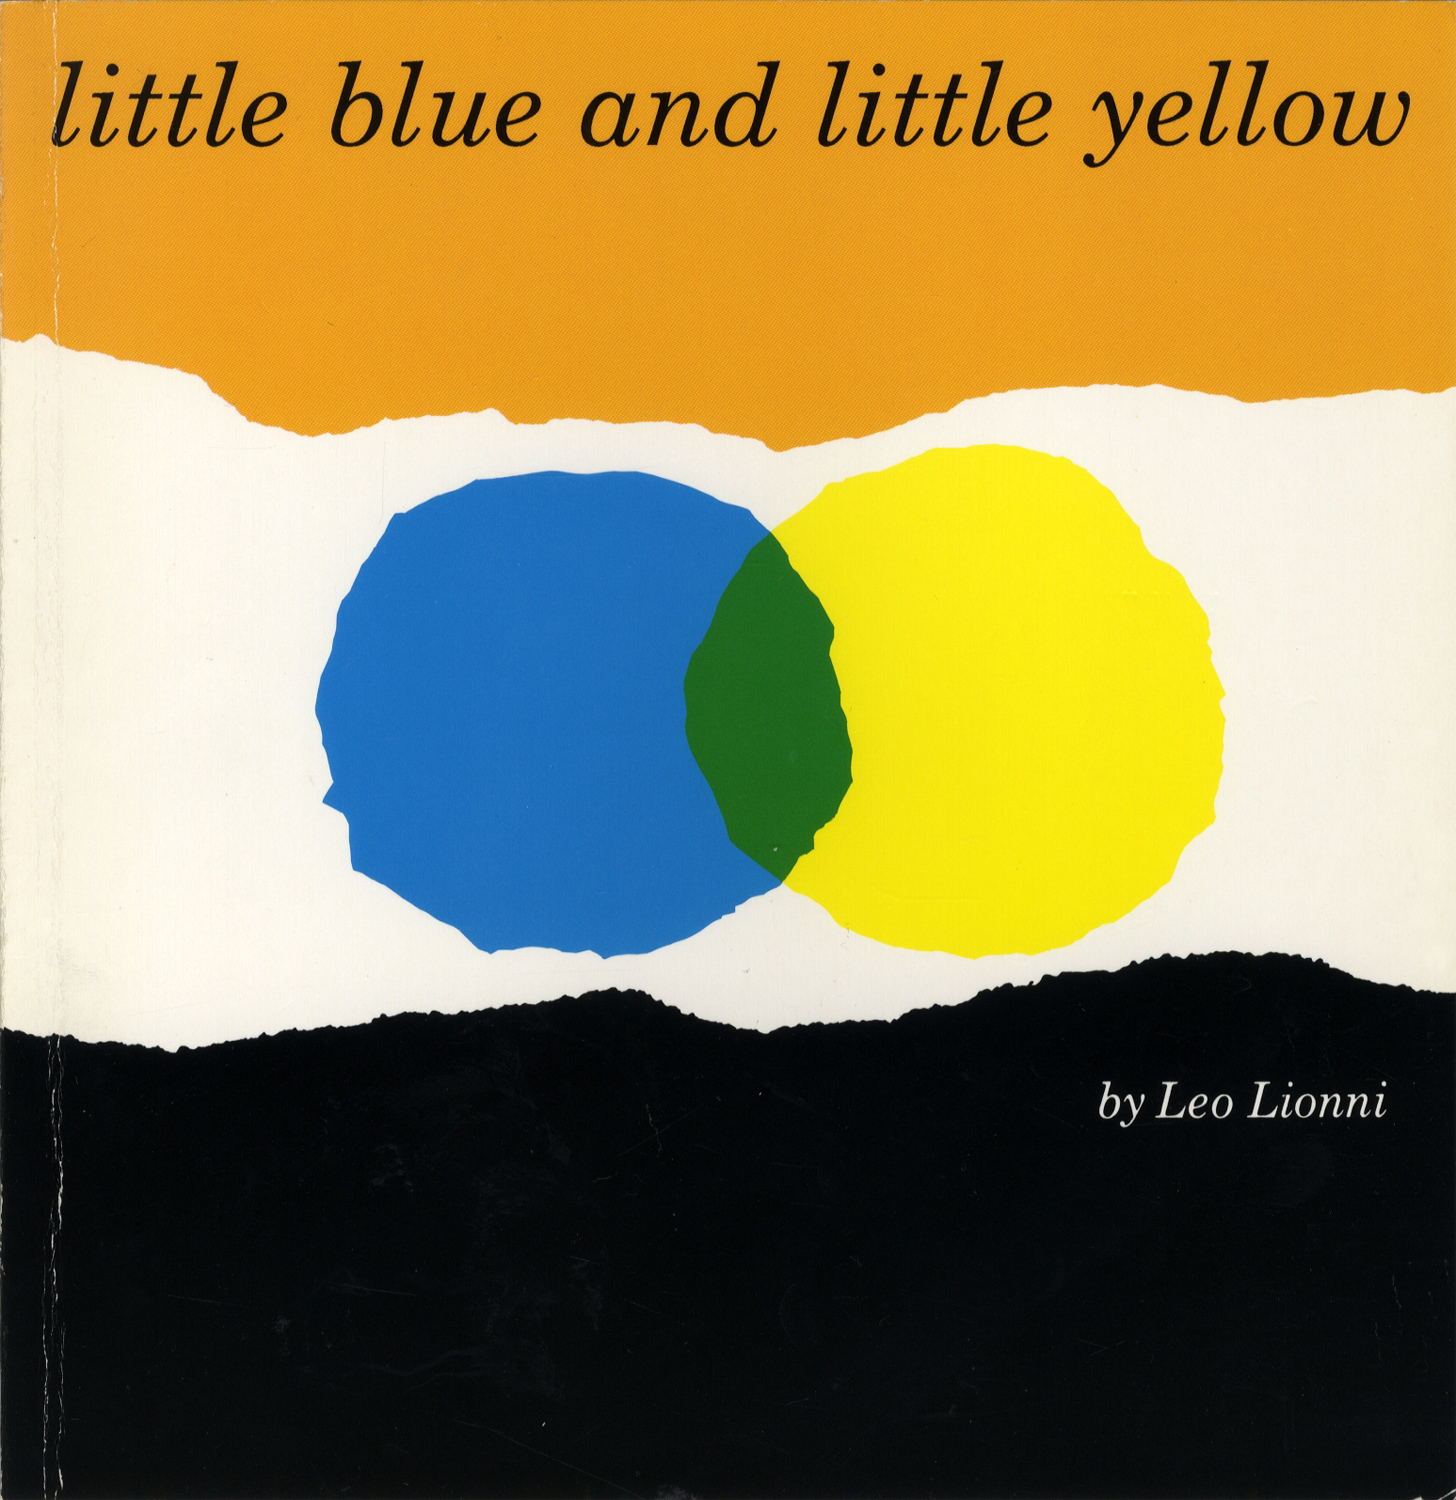 little blue and little yellow[image1]